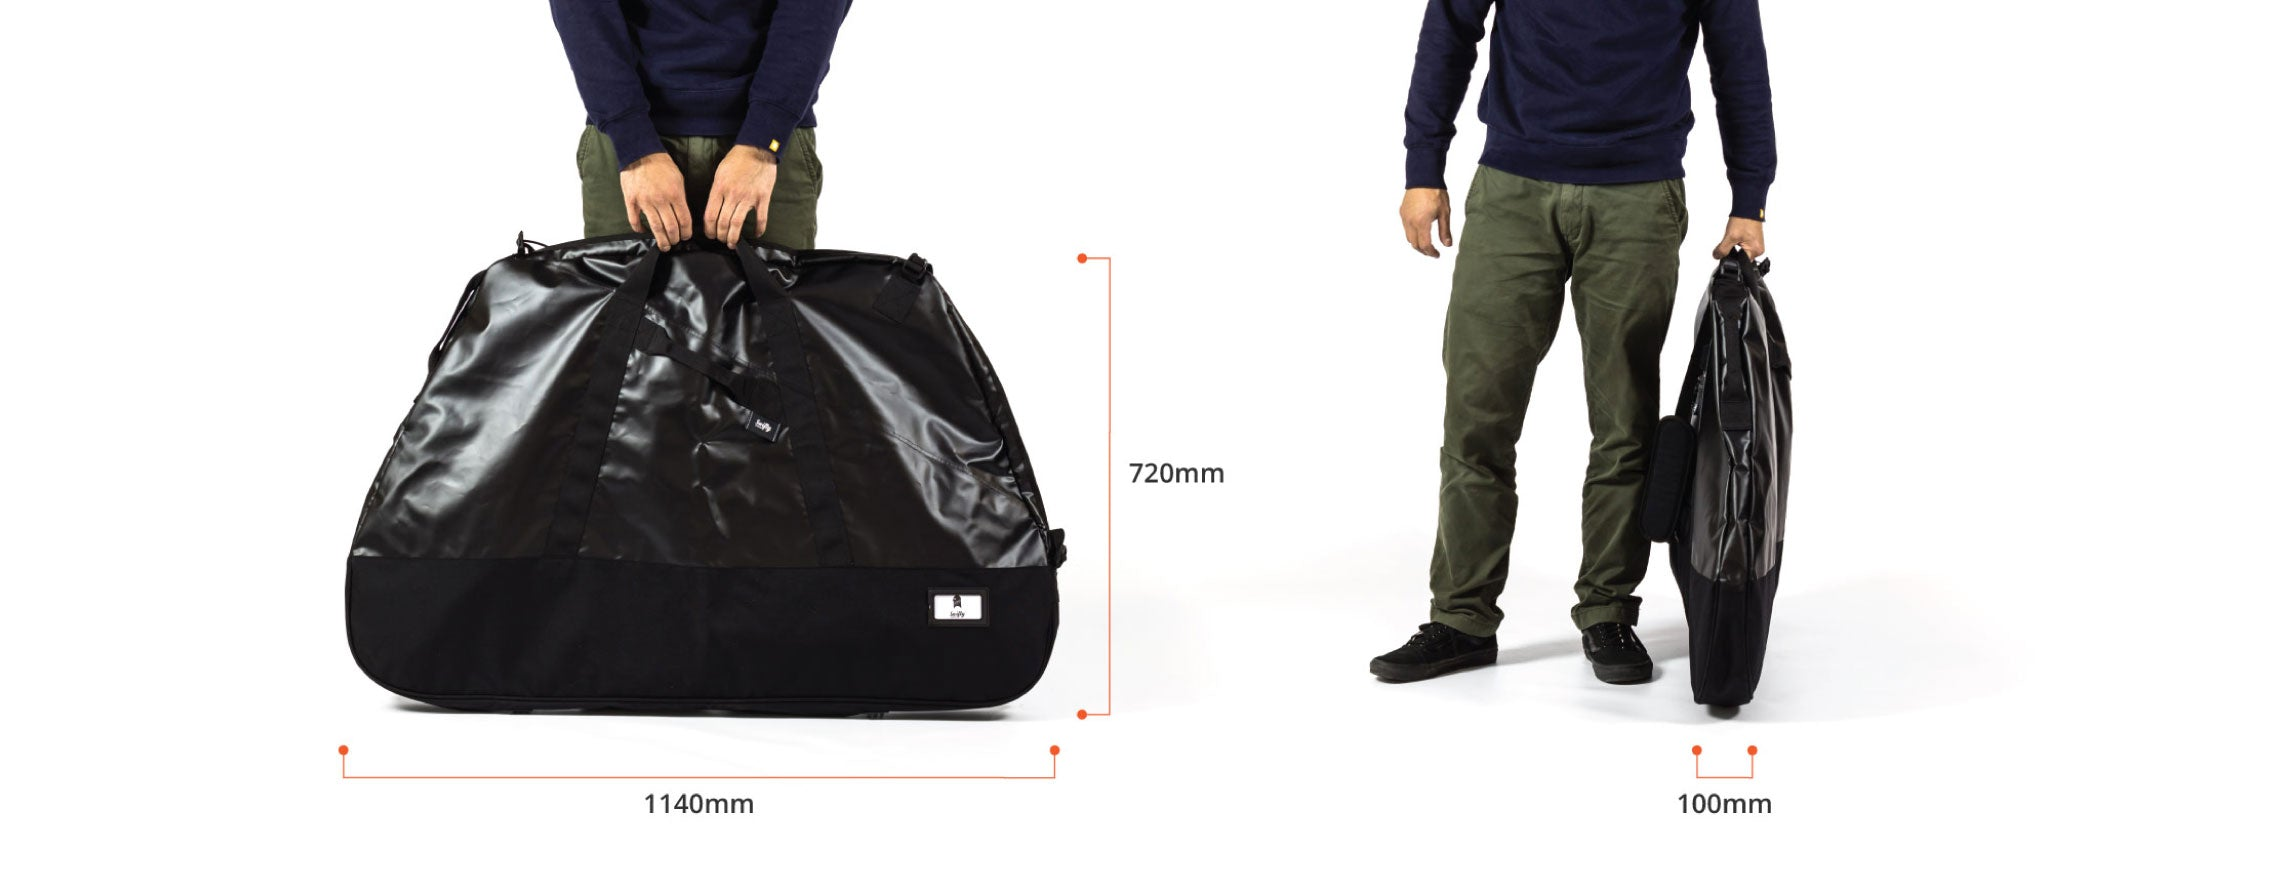 Protective Bag Dimensions